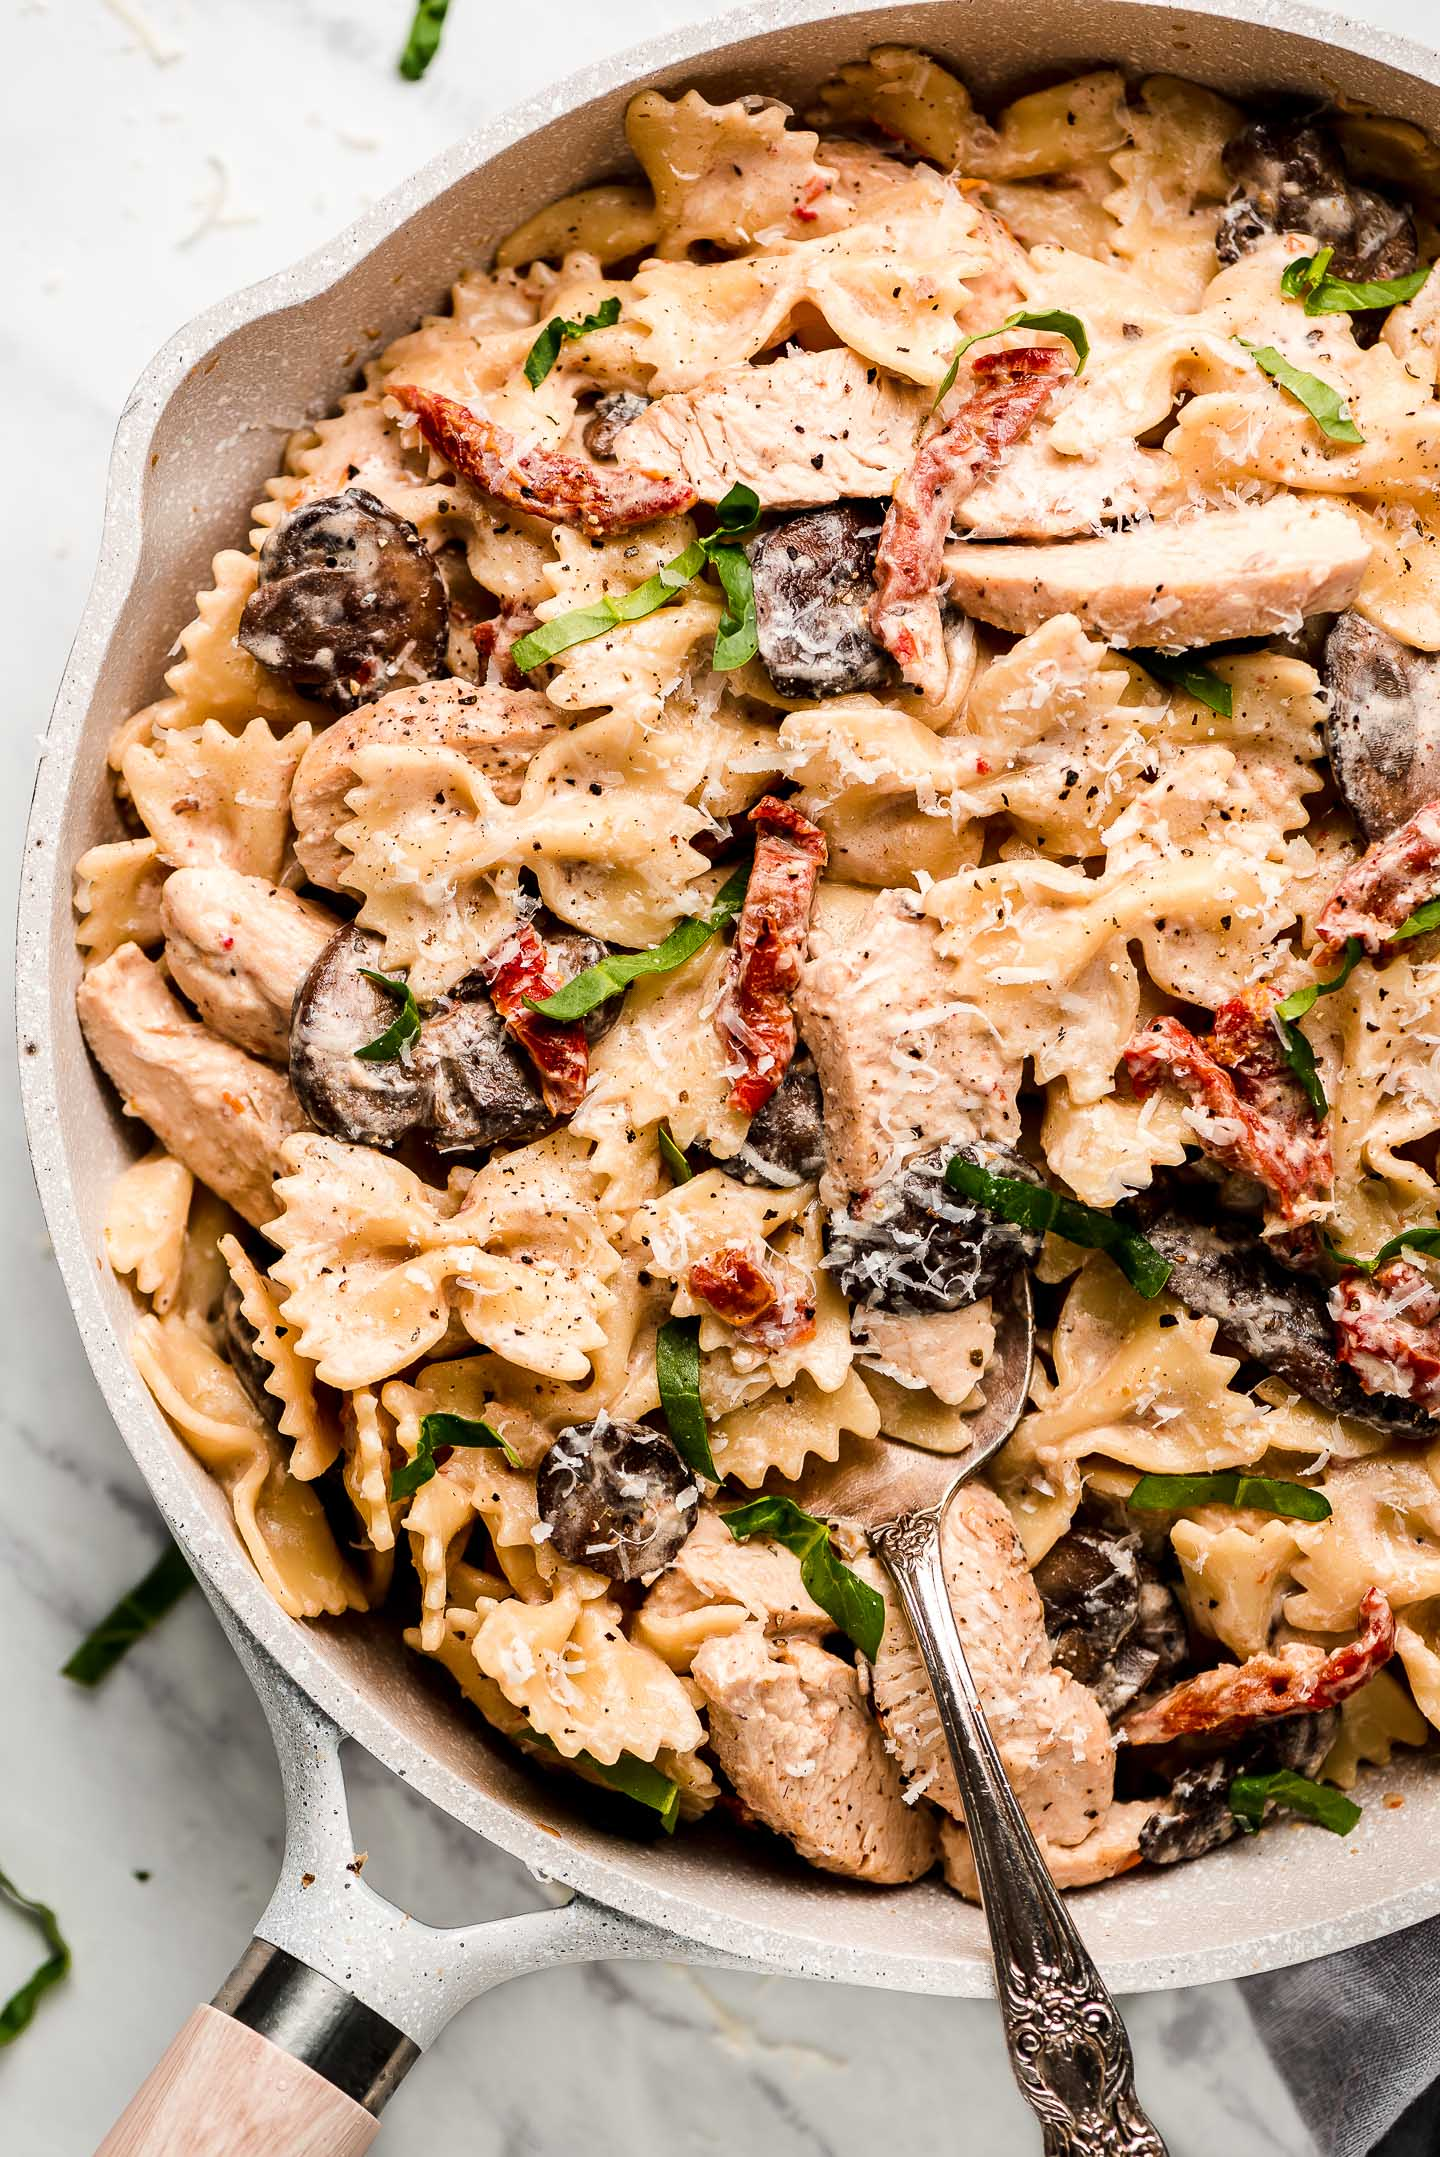 Macaroni Grill's copycat Chicken Pasta Milano in a skillet garnished with basil and shredded Parmesan cheese.